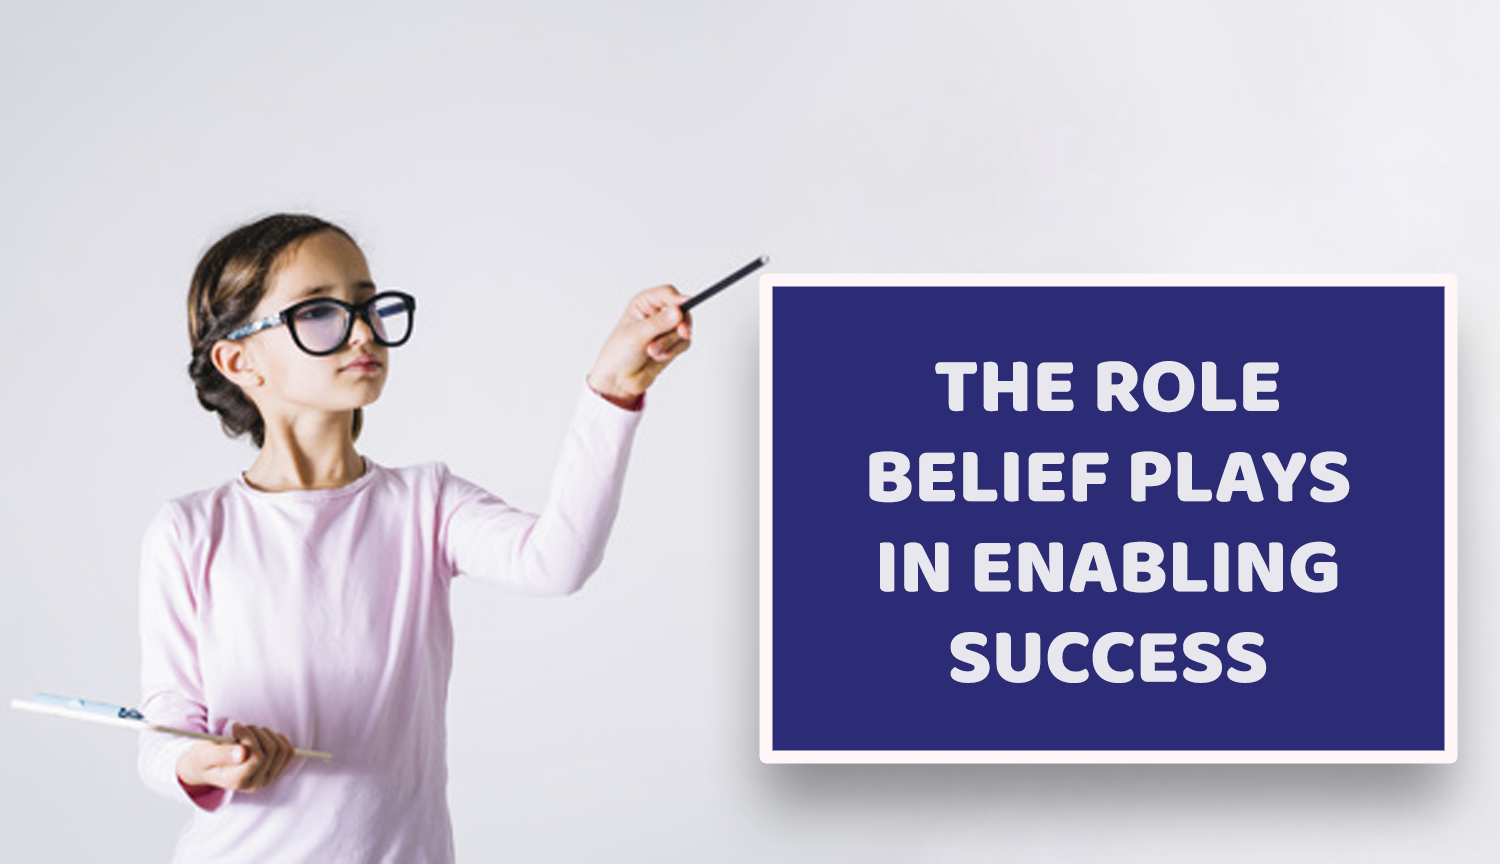 The role belief plays in enabling success